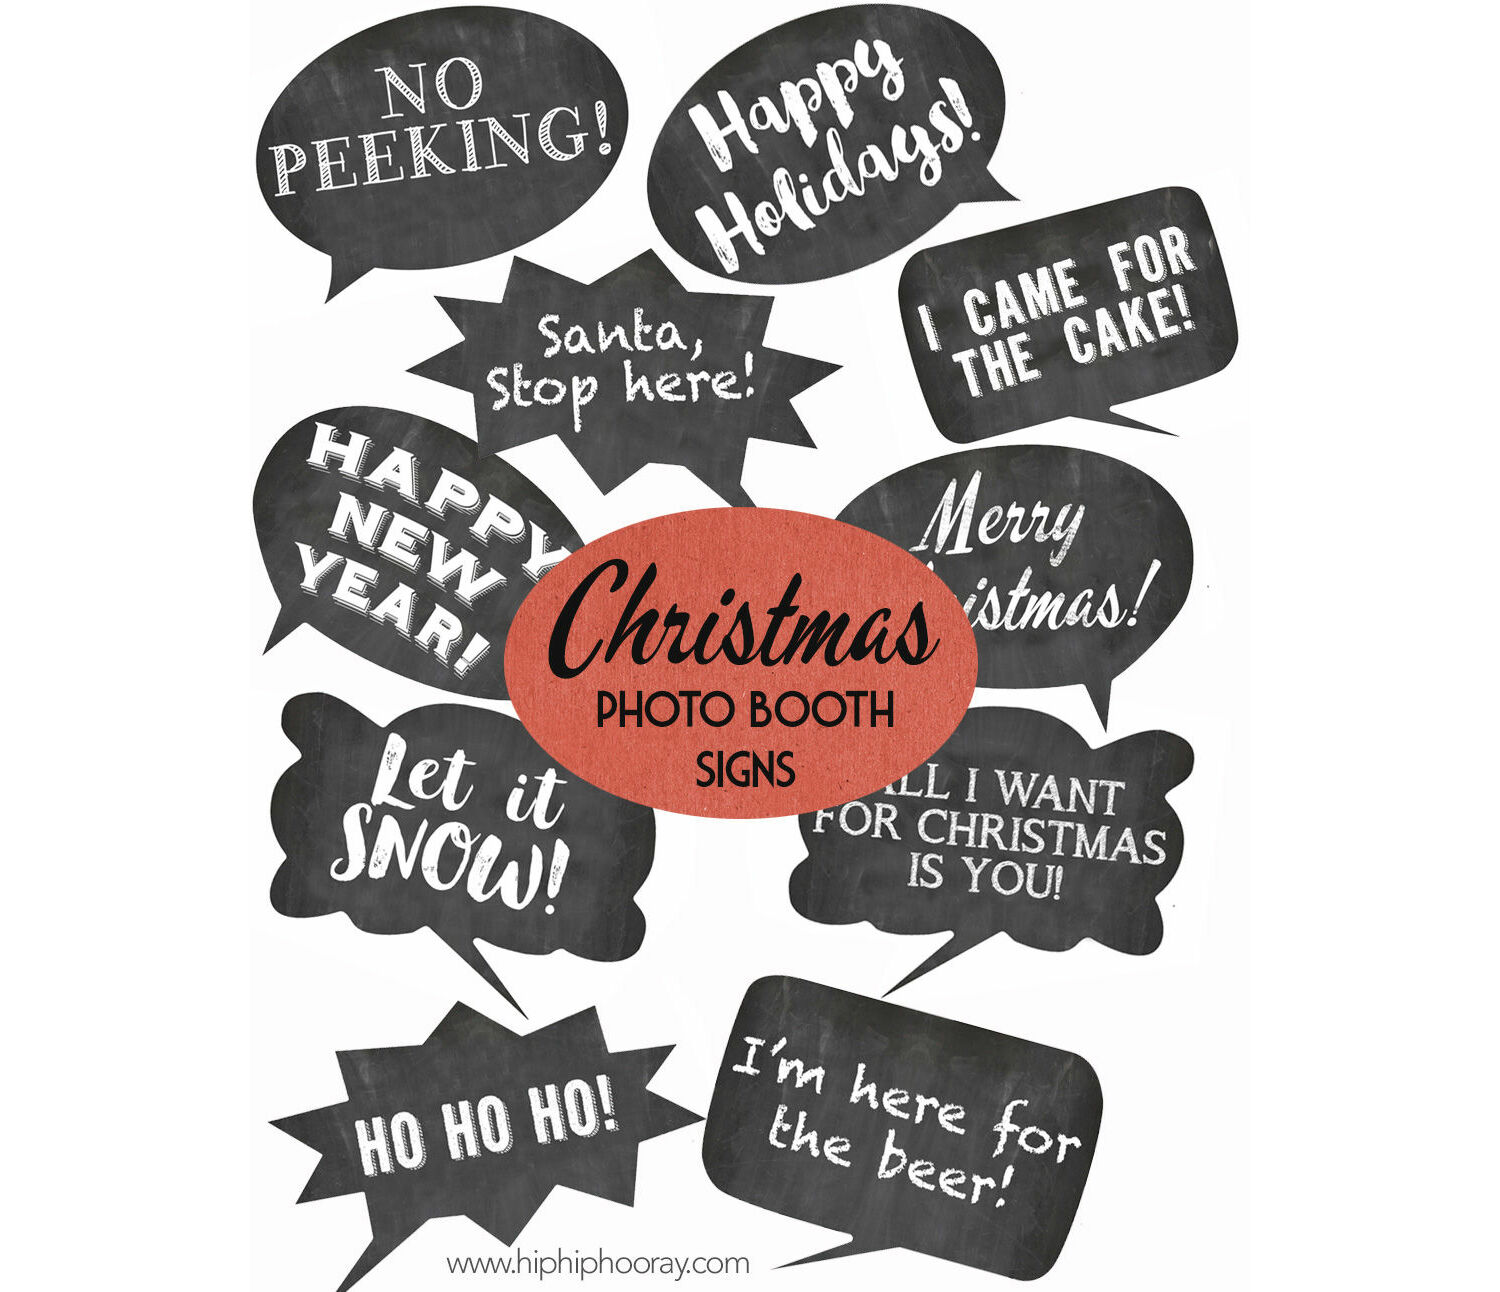 photograph regarding Christmas Photo Booth Props Printable titled Xmas Family vacation Chalkboard Speech Bubble Slogans - Printable Image Booth Props